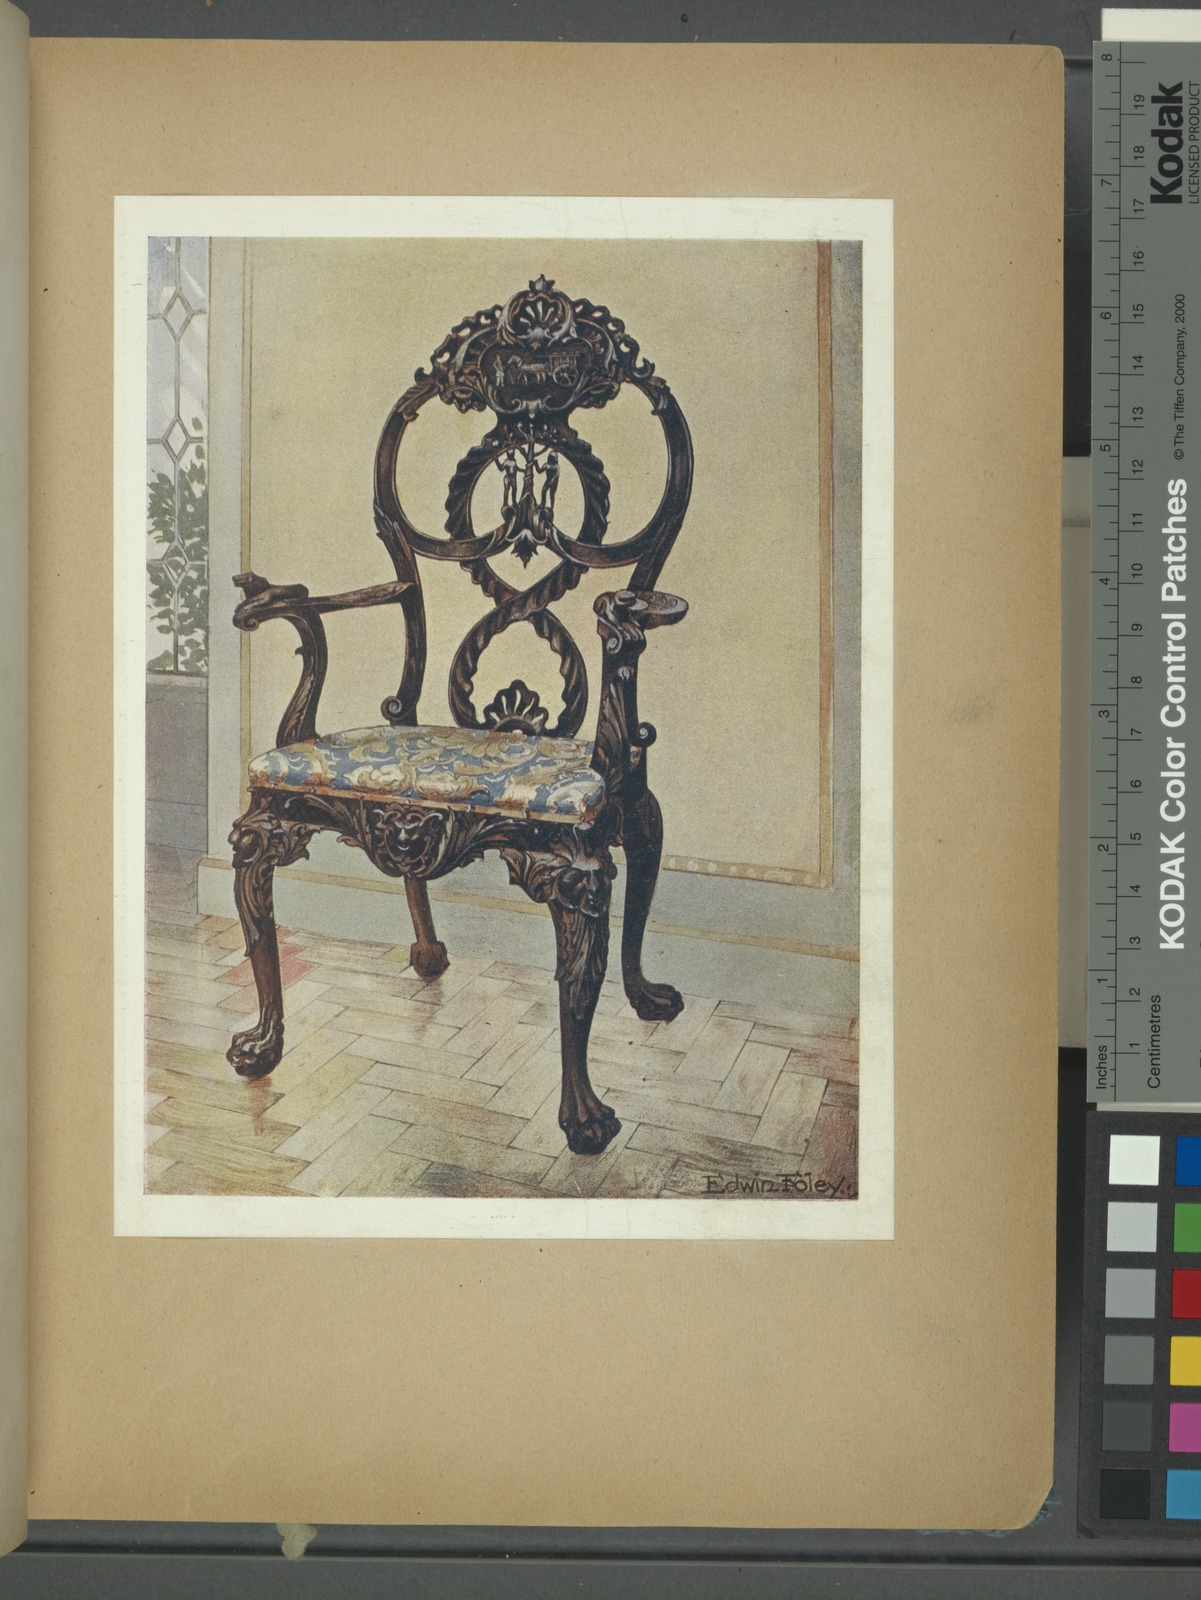 Carved early Chippendale chairman's chair. Property of Mrs. Storr, Edenbridge, ca. 1735.